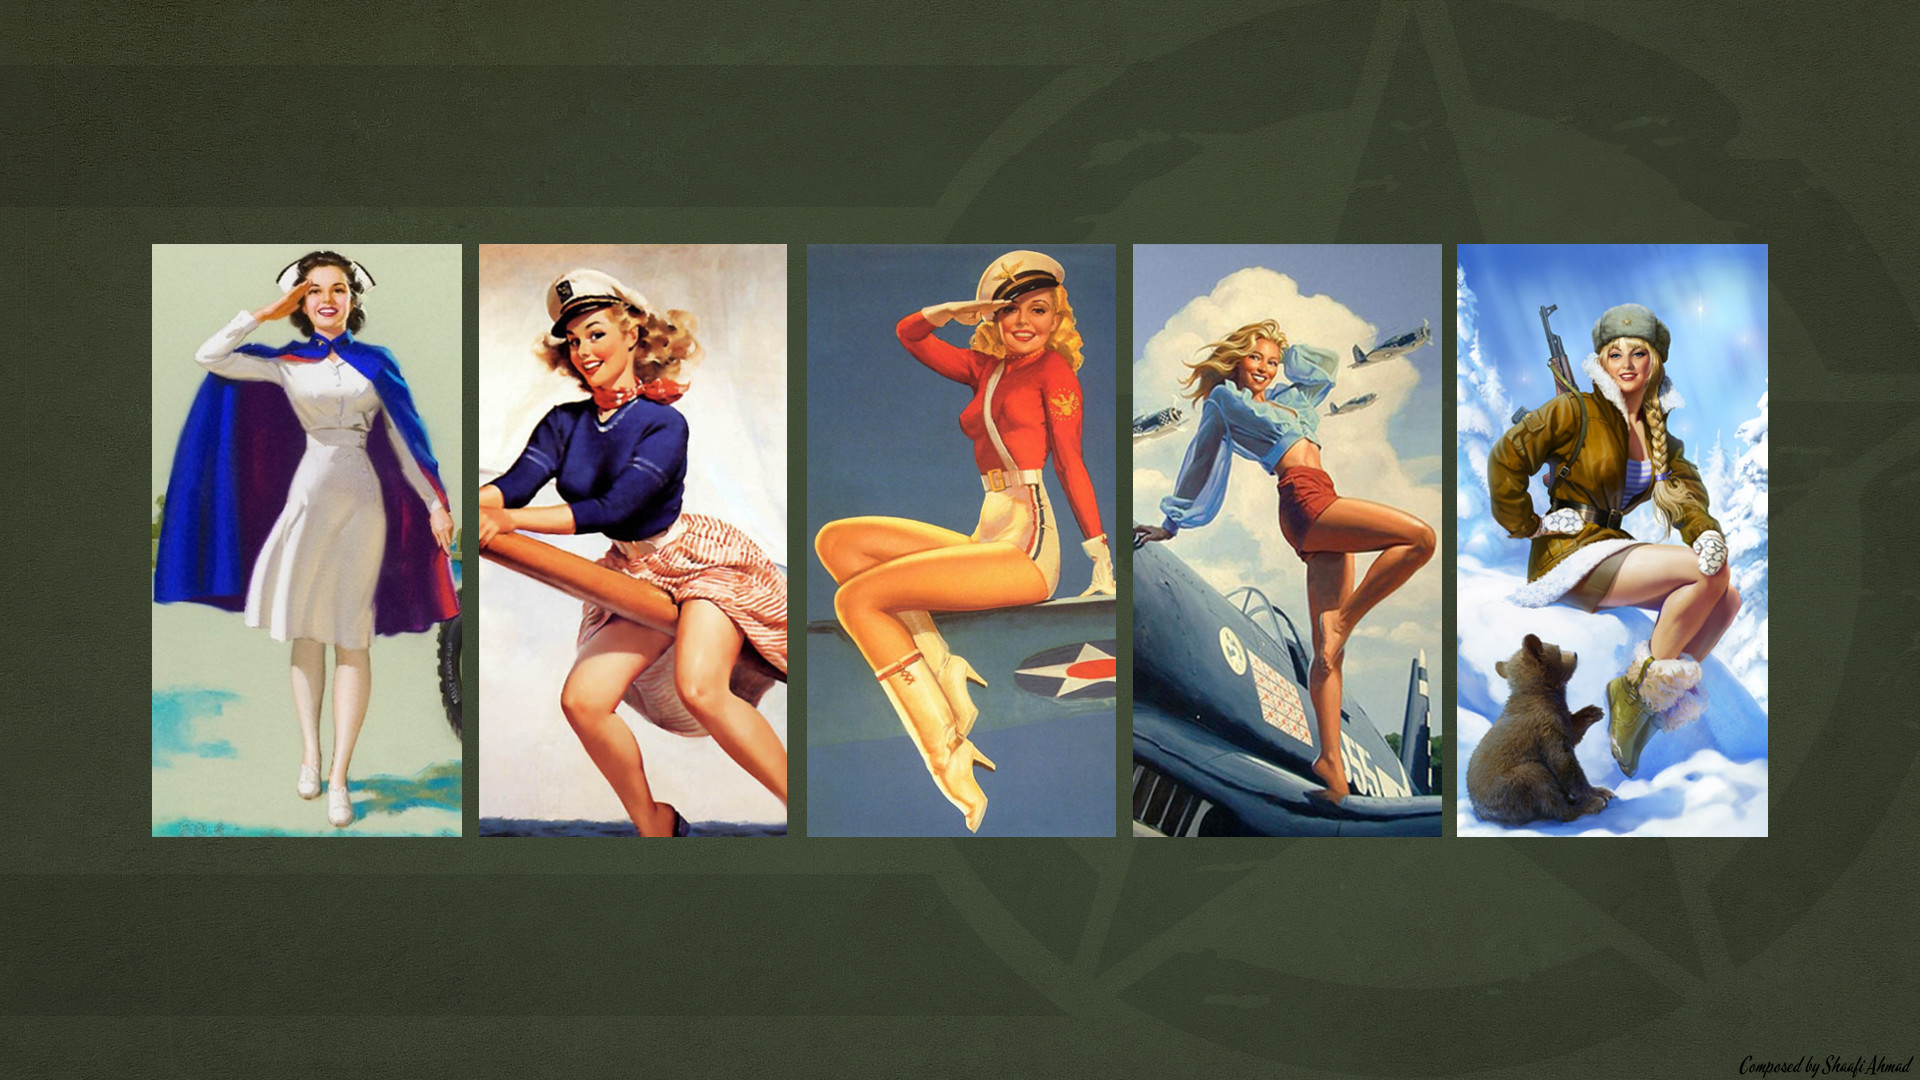 1920x1080 Army Themed Pin Up Wallpaper. 2 yrs · coolfield7 · r/Military